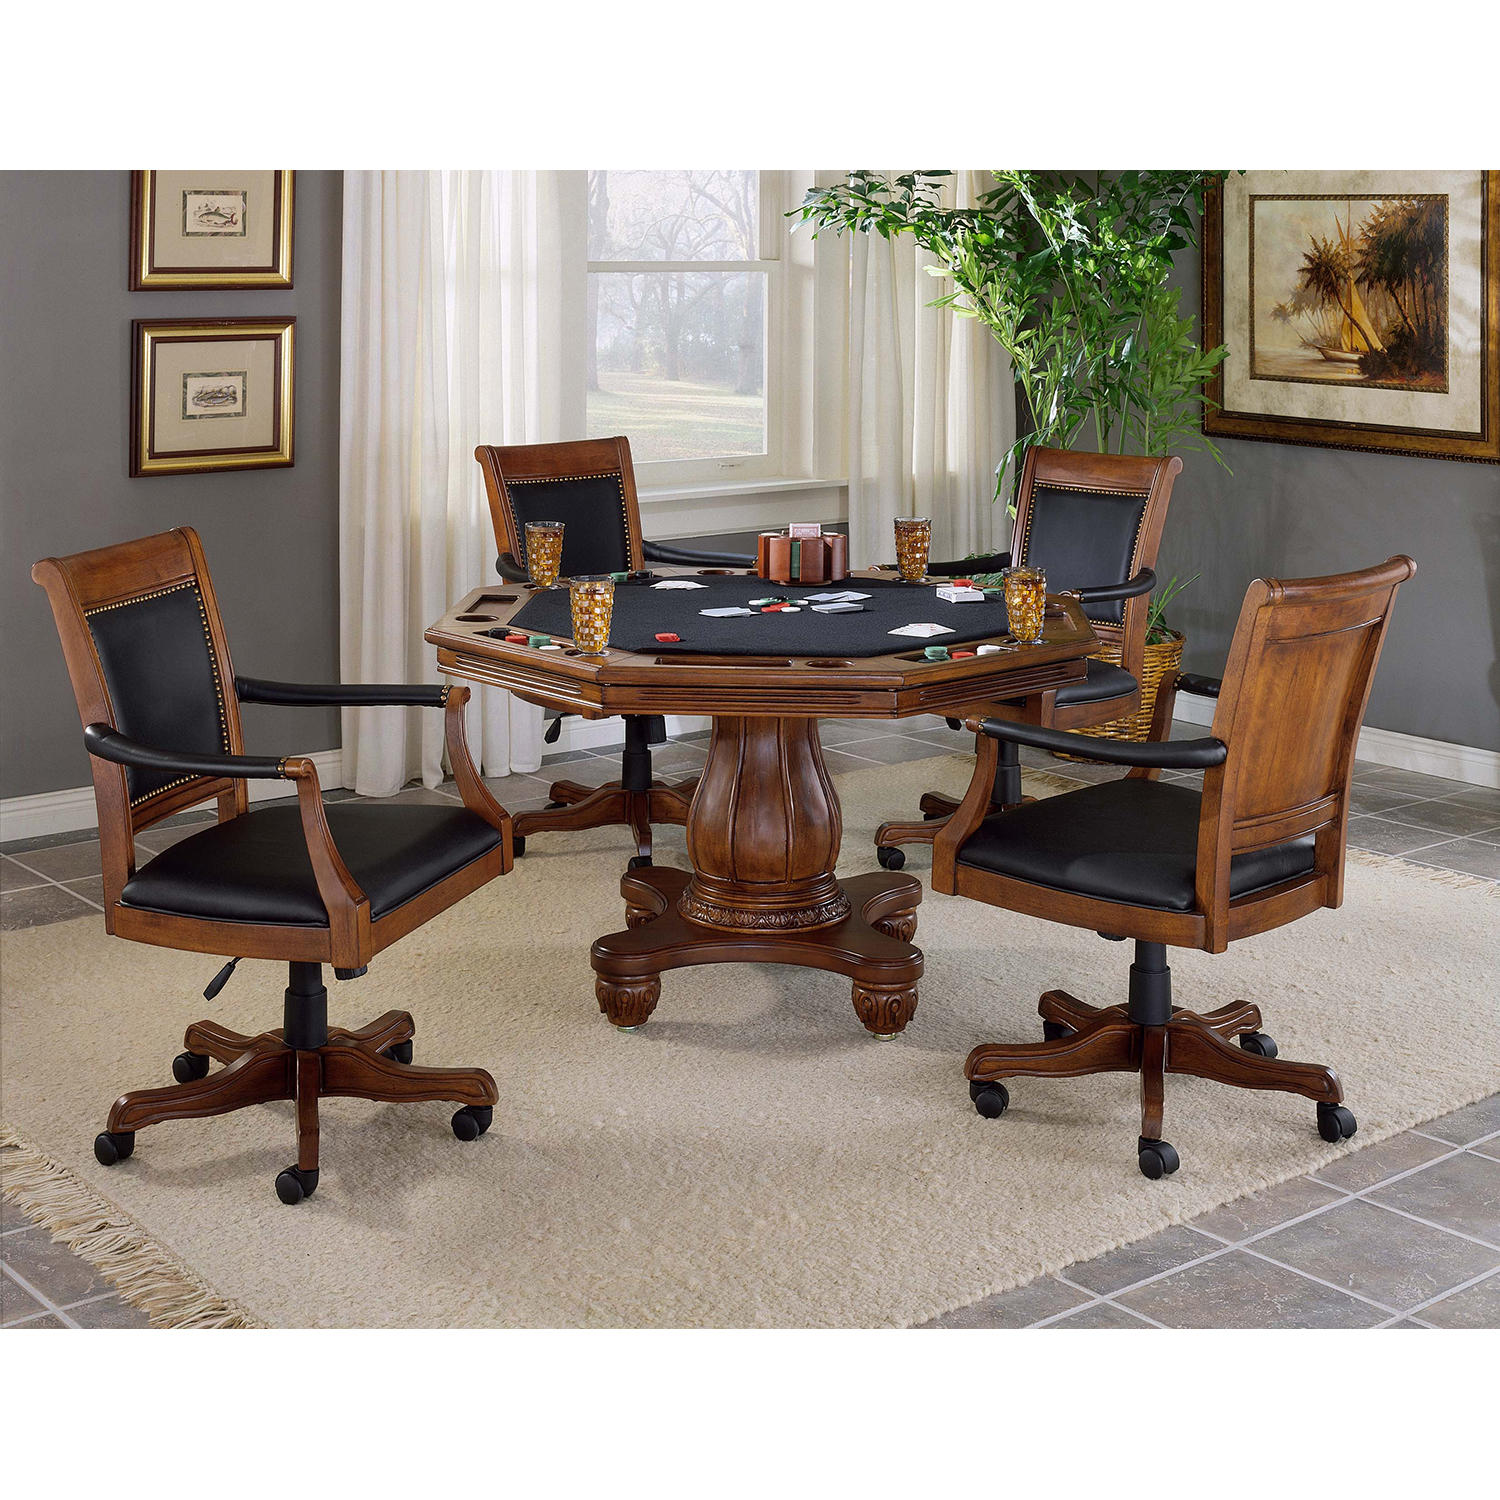 Hillsdale Furniture Kingston 5 Piece Game Table and Chairs set